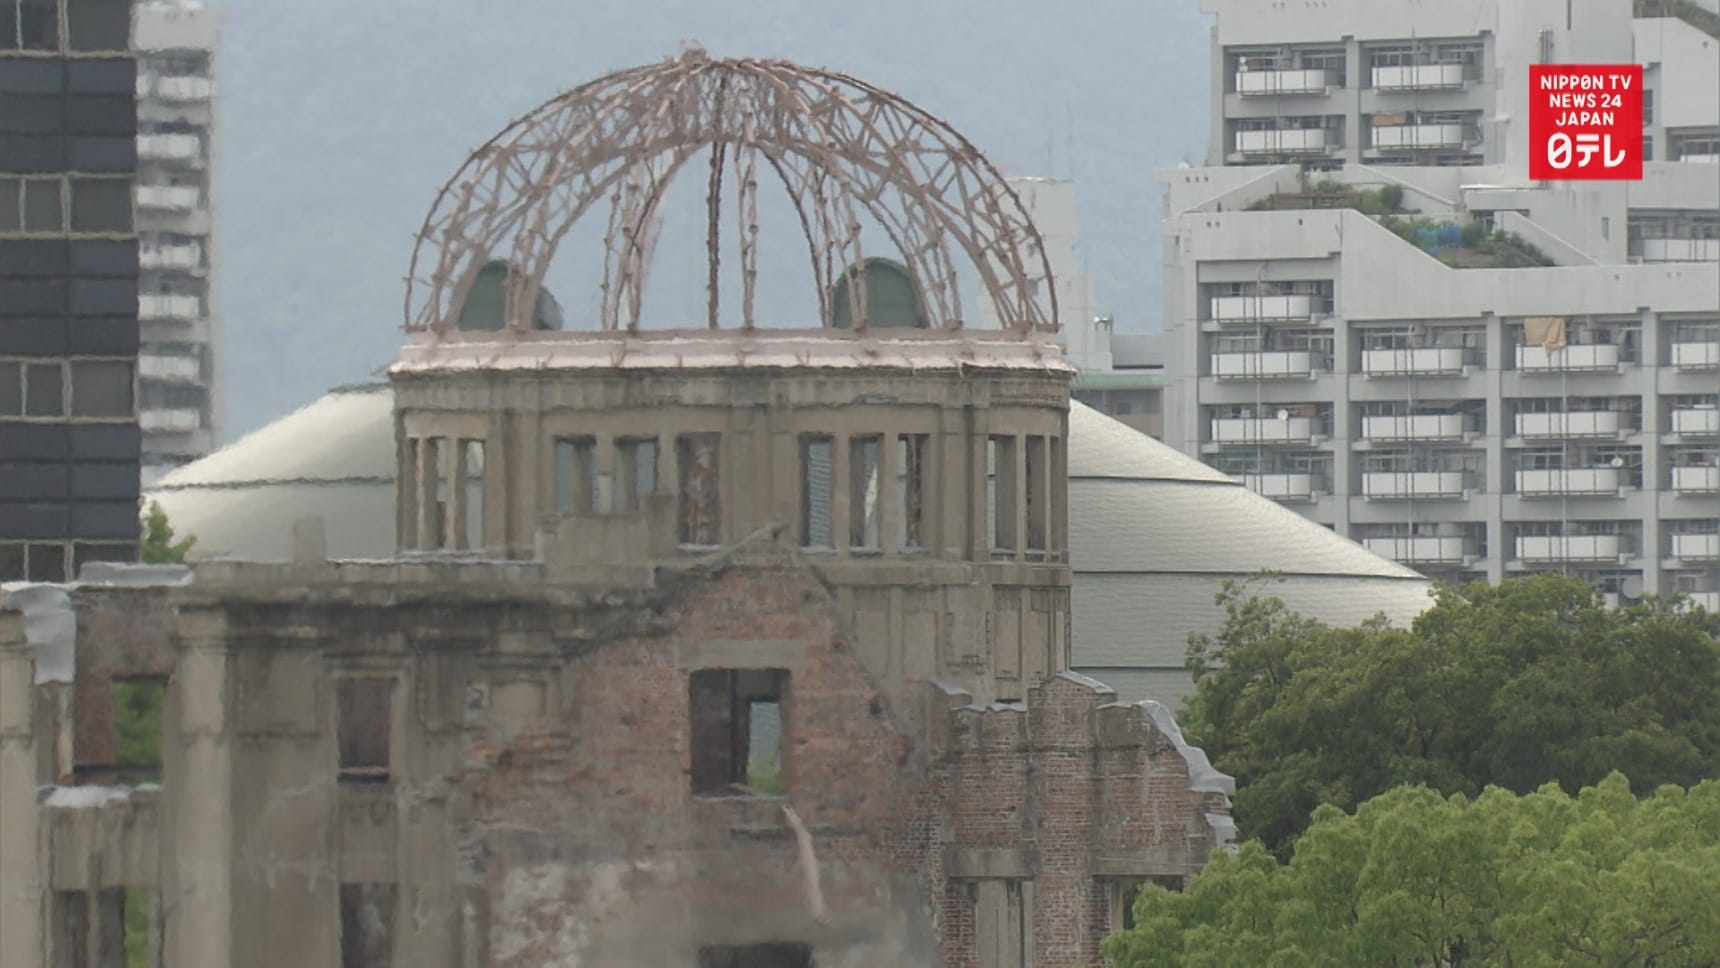 Hiroshima: 74 Years After the Atomic Bomb